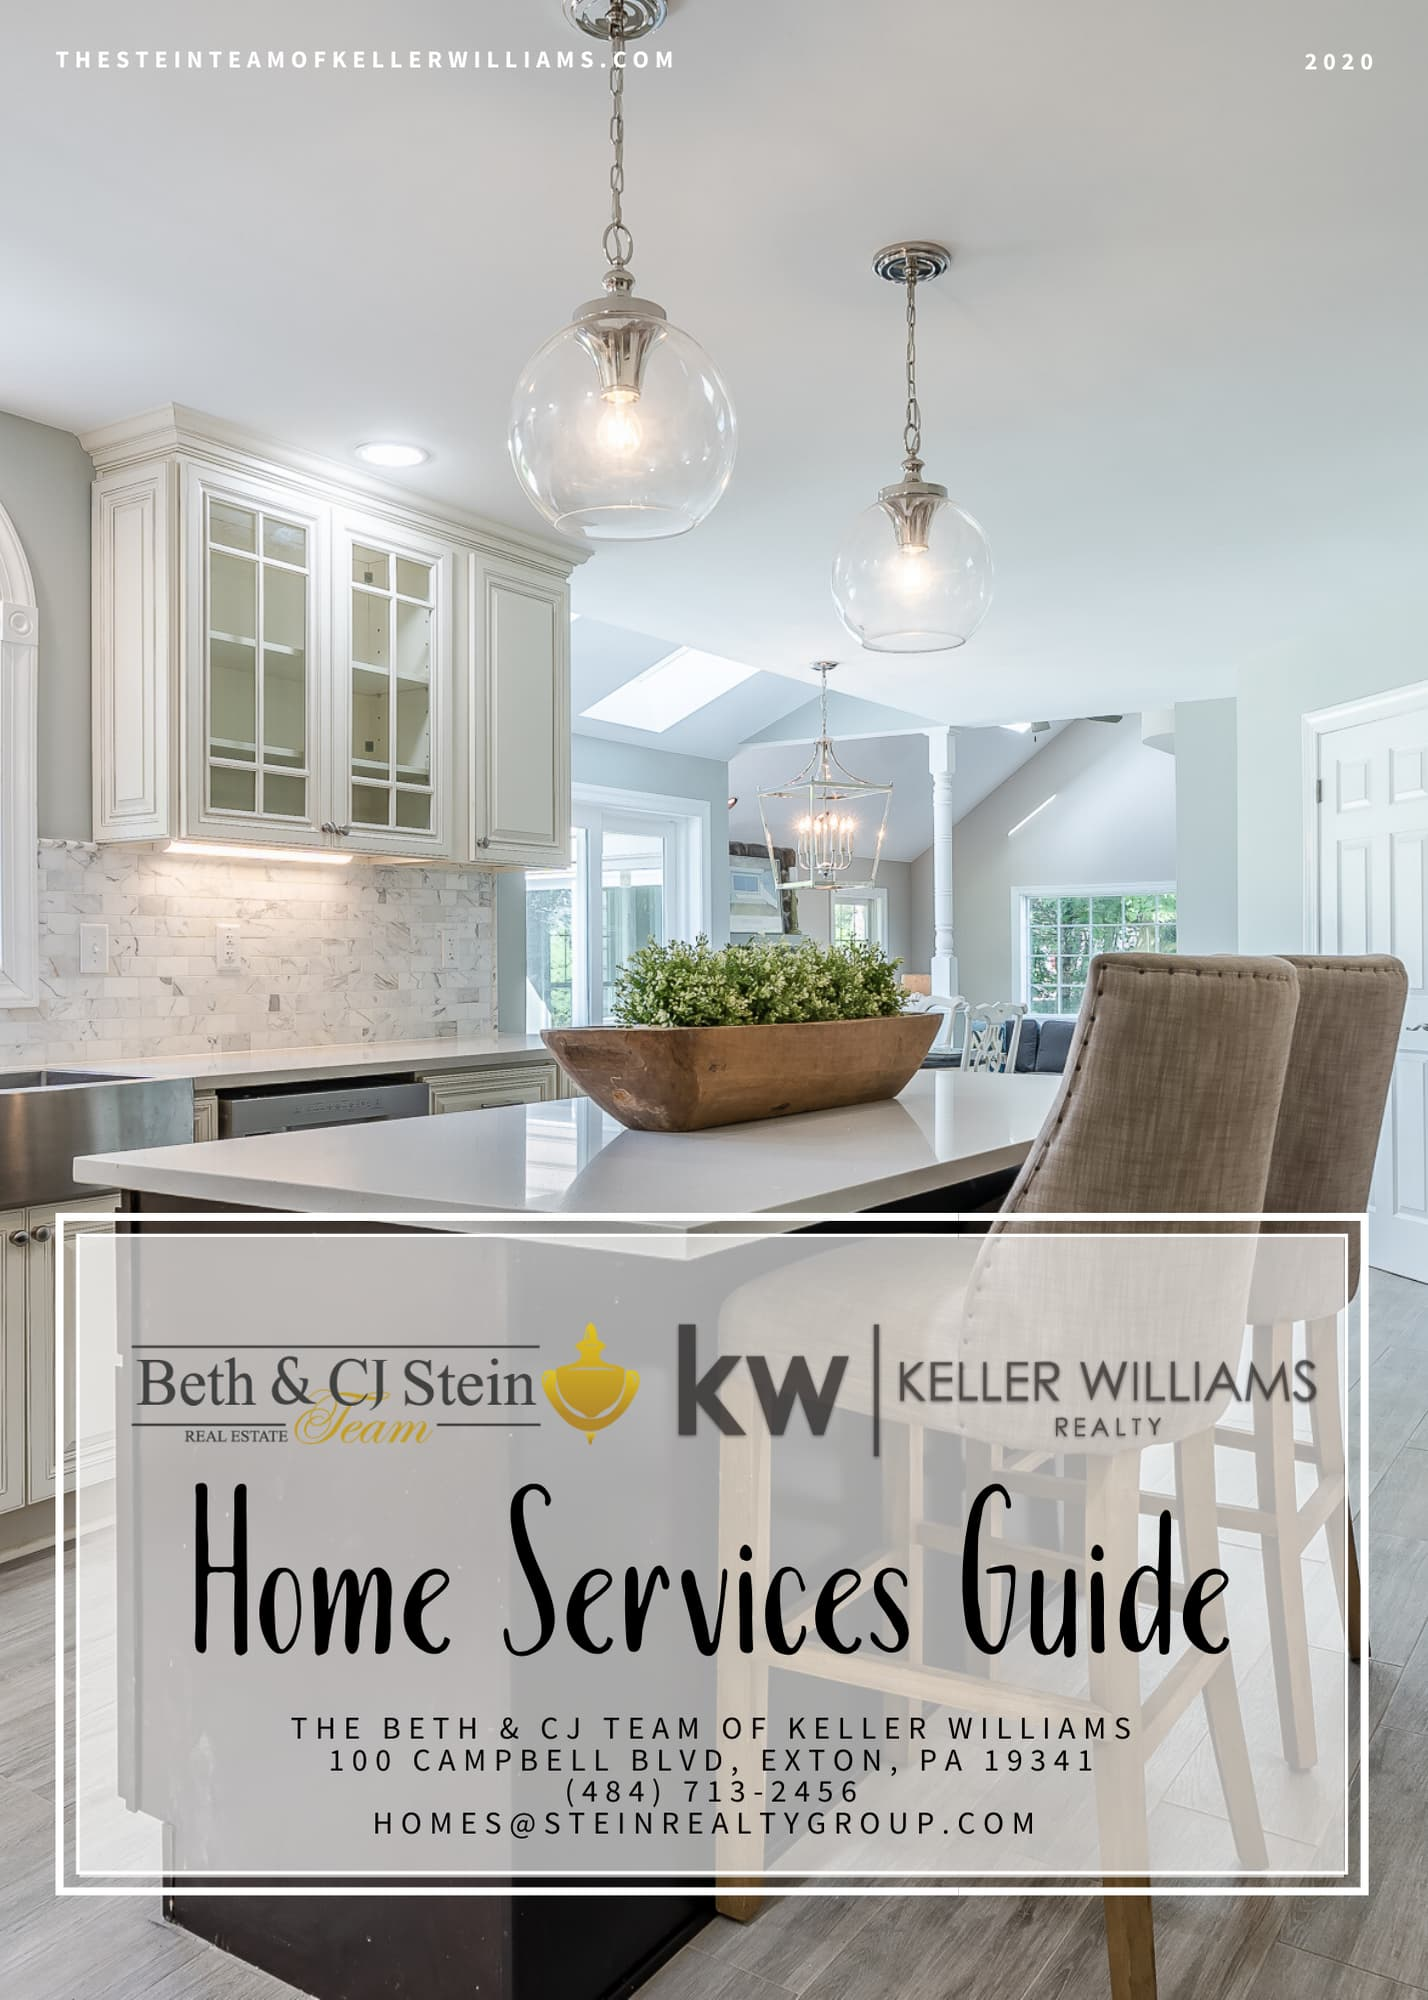 Home Services Guide